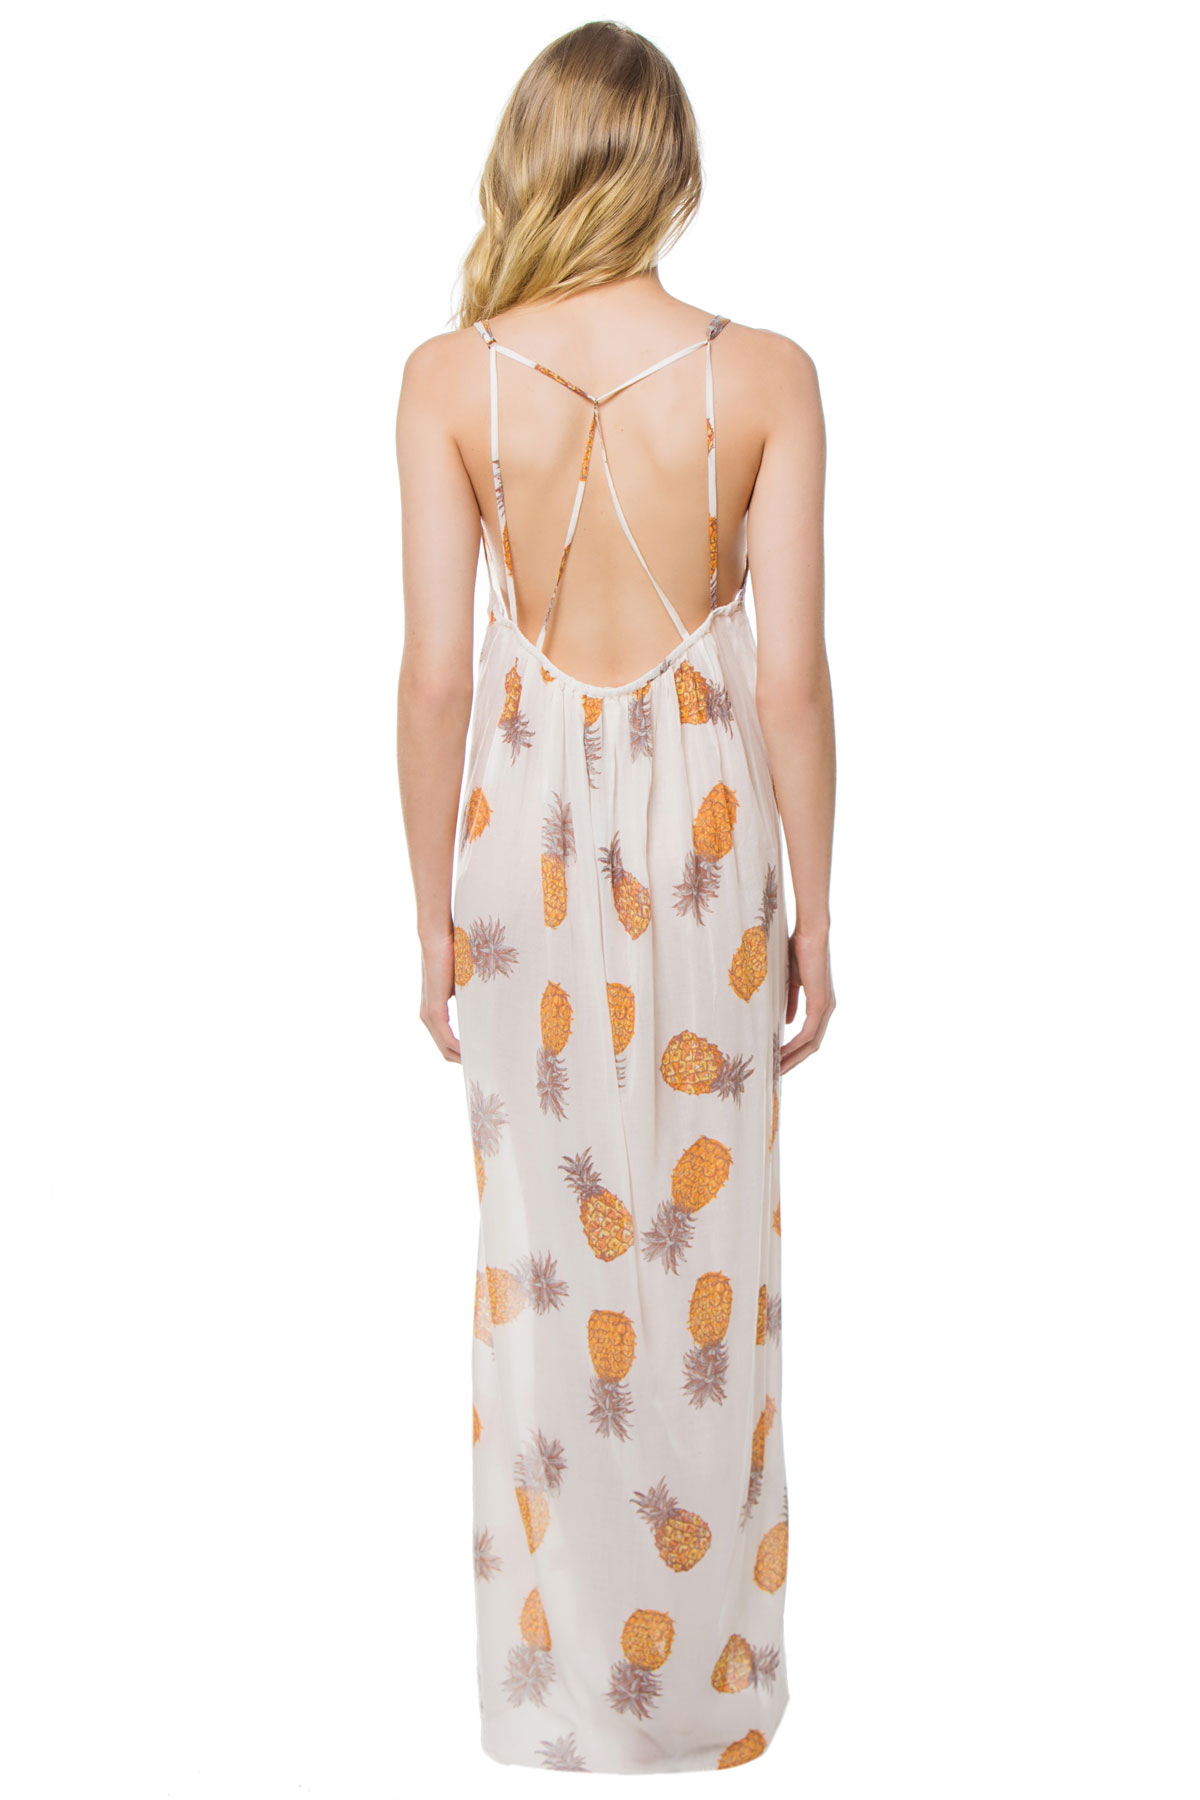 Anana Pineapple Print Maxi Dress - Gold/Ivory 2